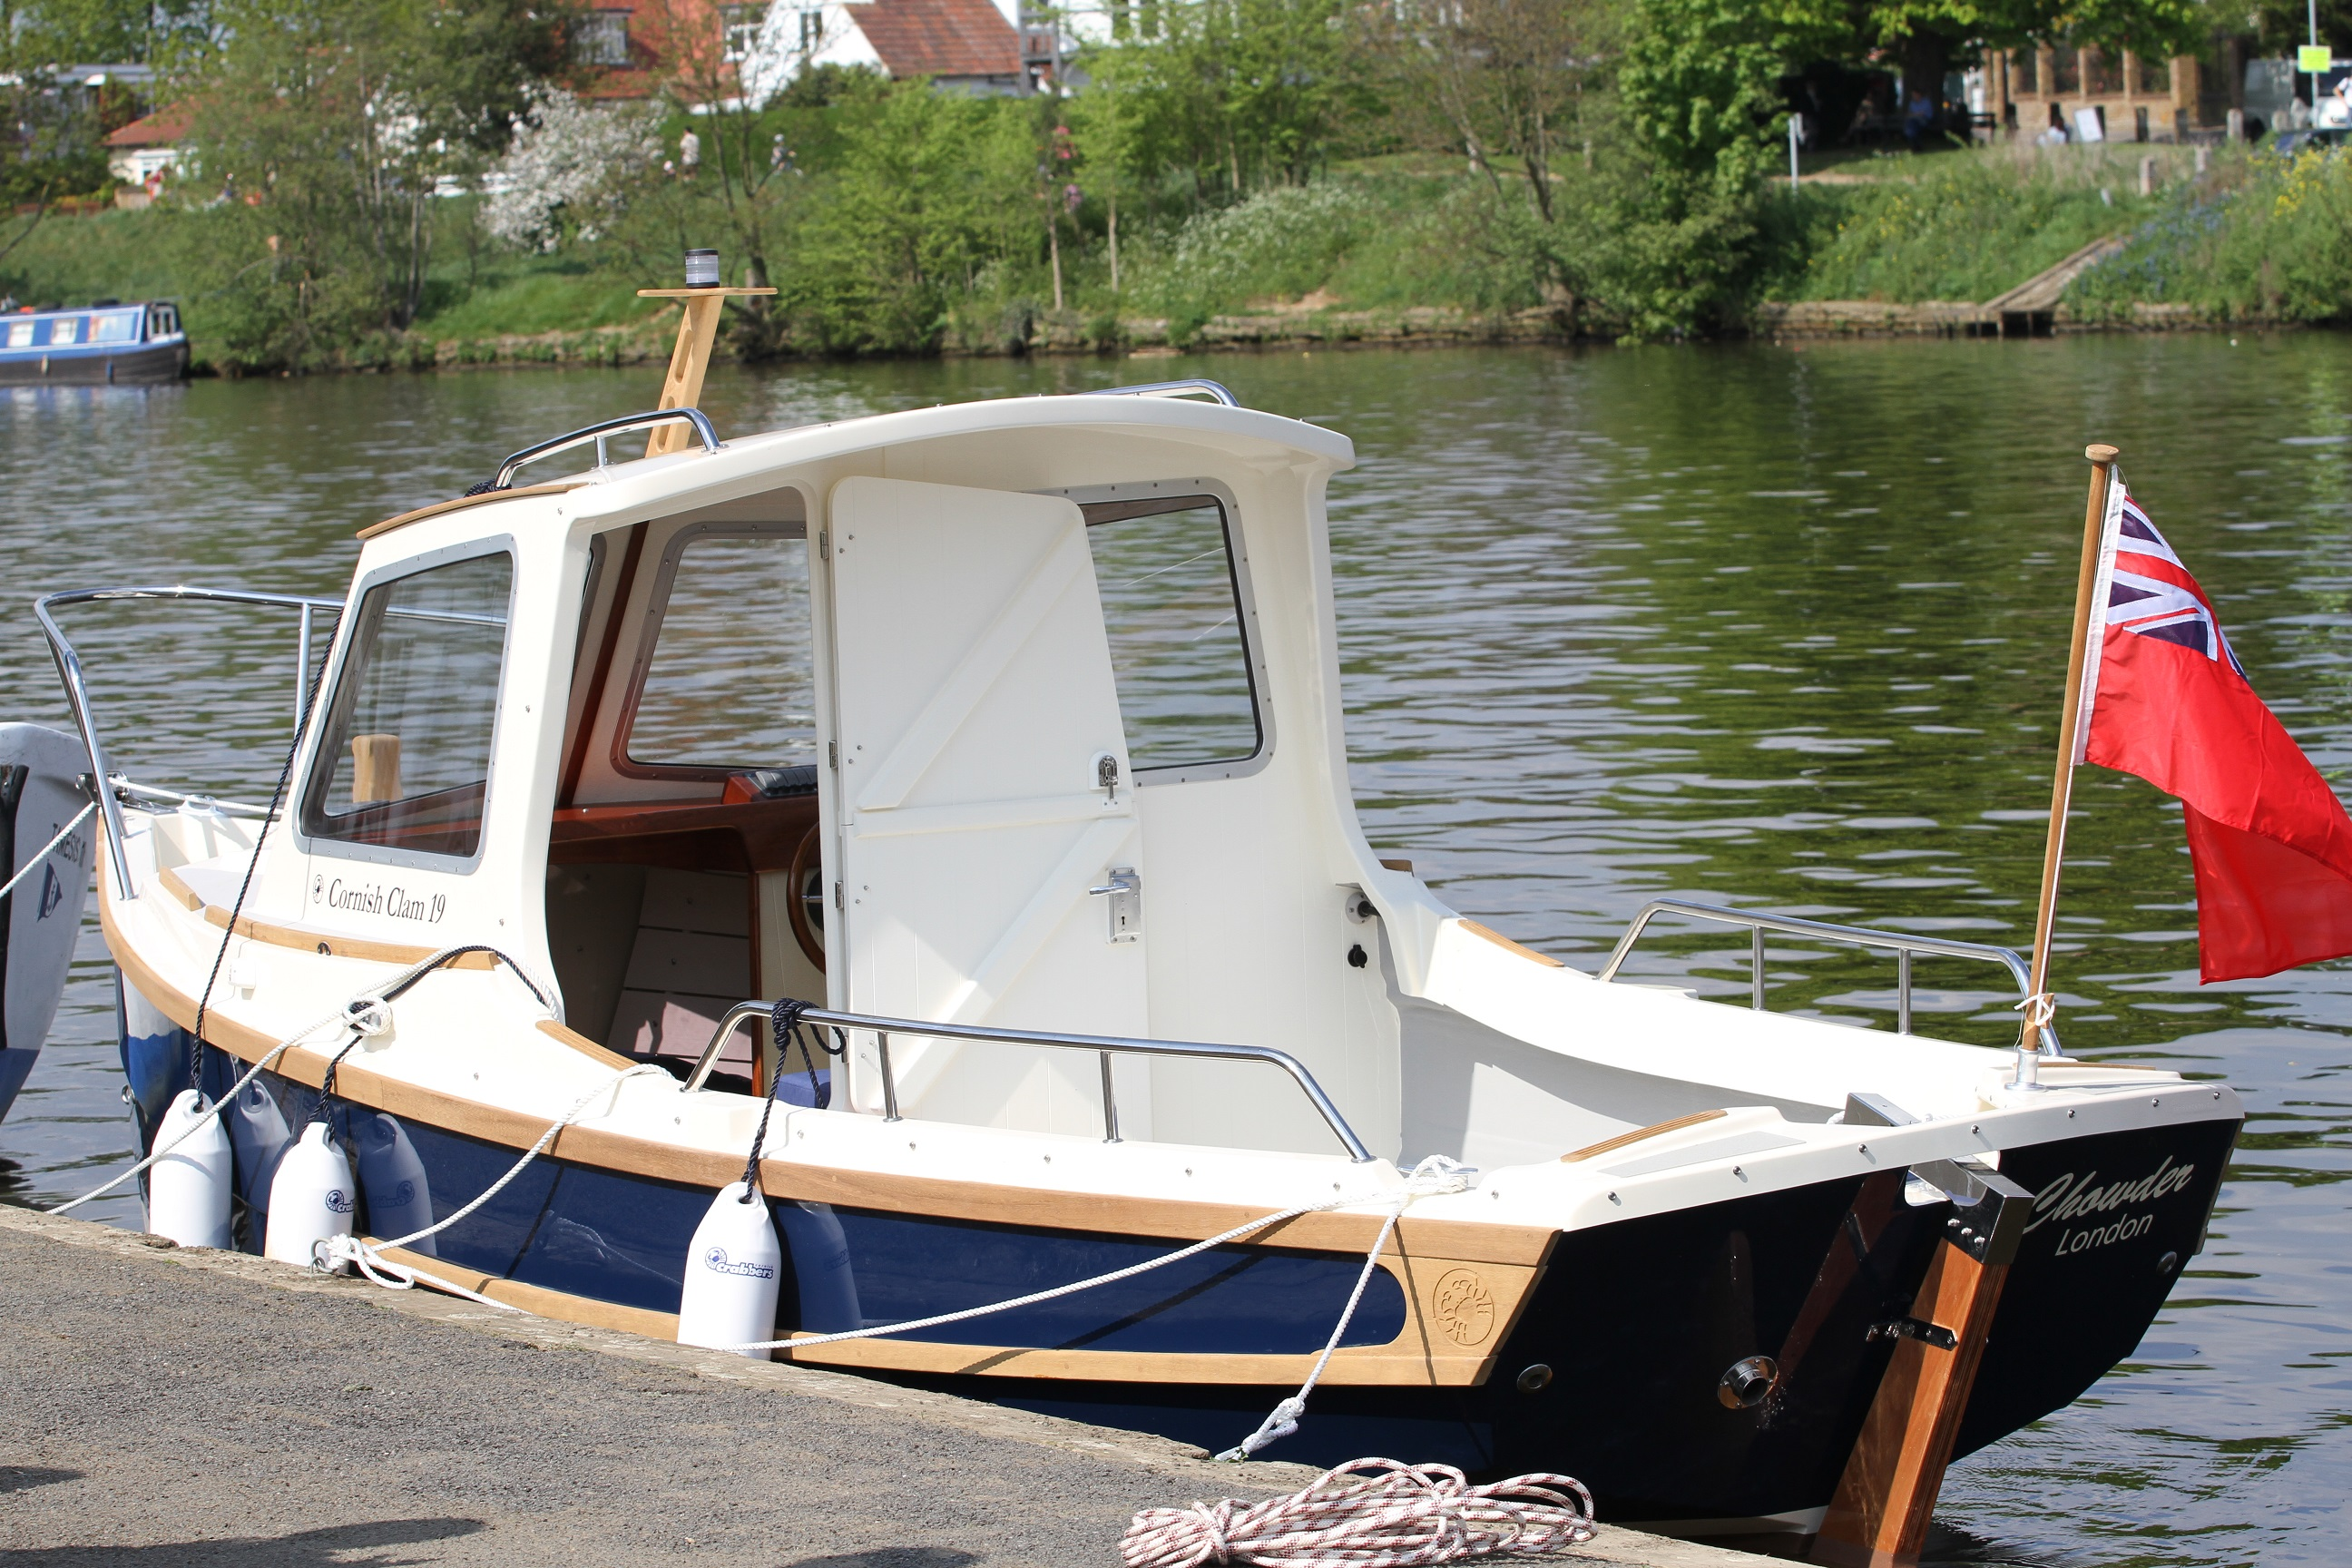 clam19-moored-empty